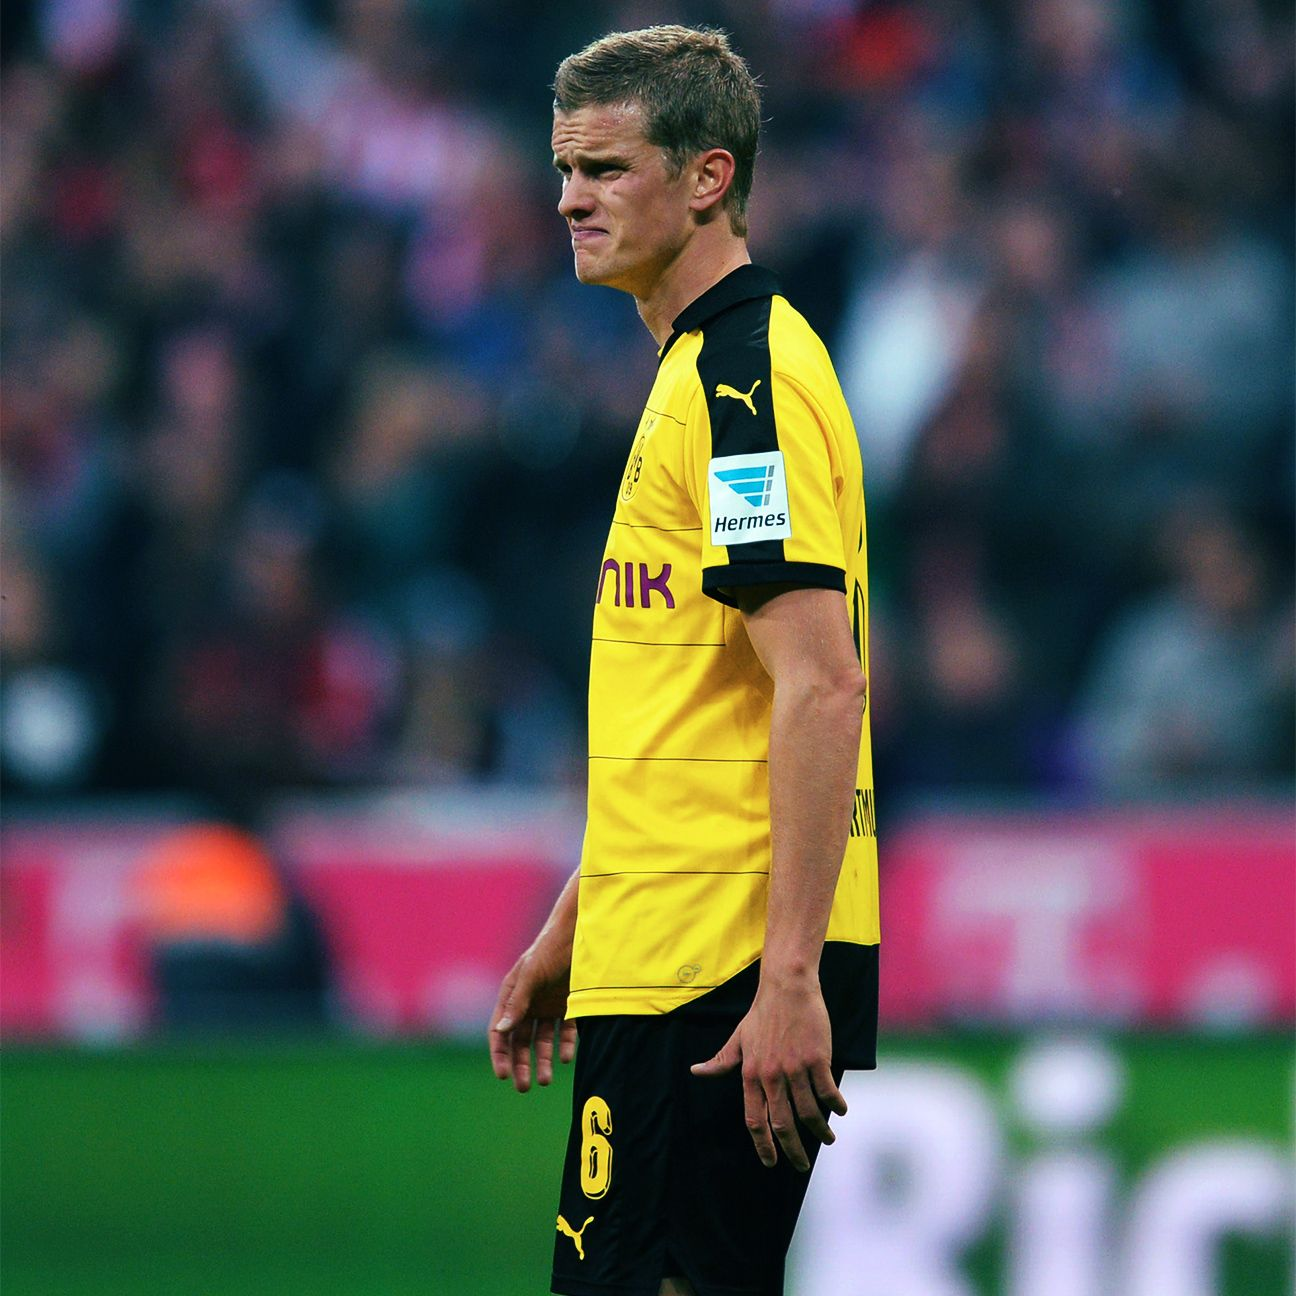 Little-used midfielder Sven Bender should expect significant minutes against Qabala.